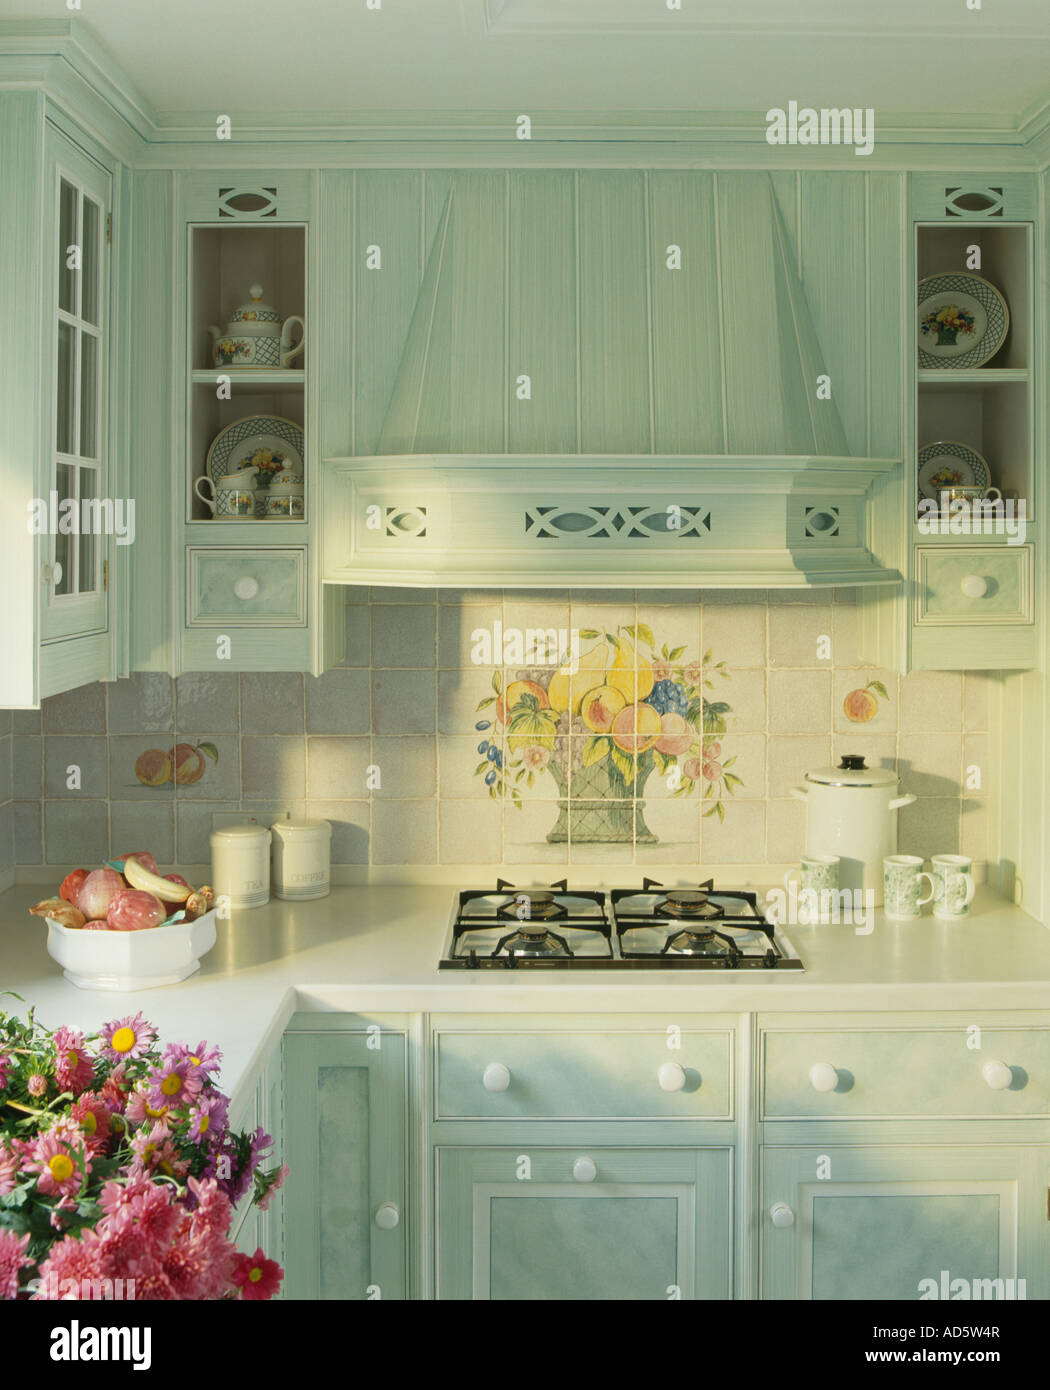 Corner Of Pastel Turquoise Kitchen With Floral Tiles Above Built In Hob And Distressed Paint Effect On Cupboards